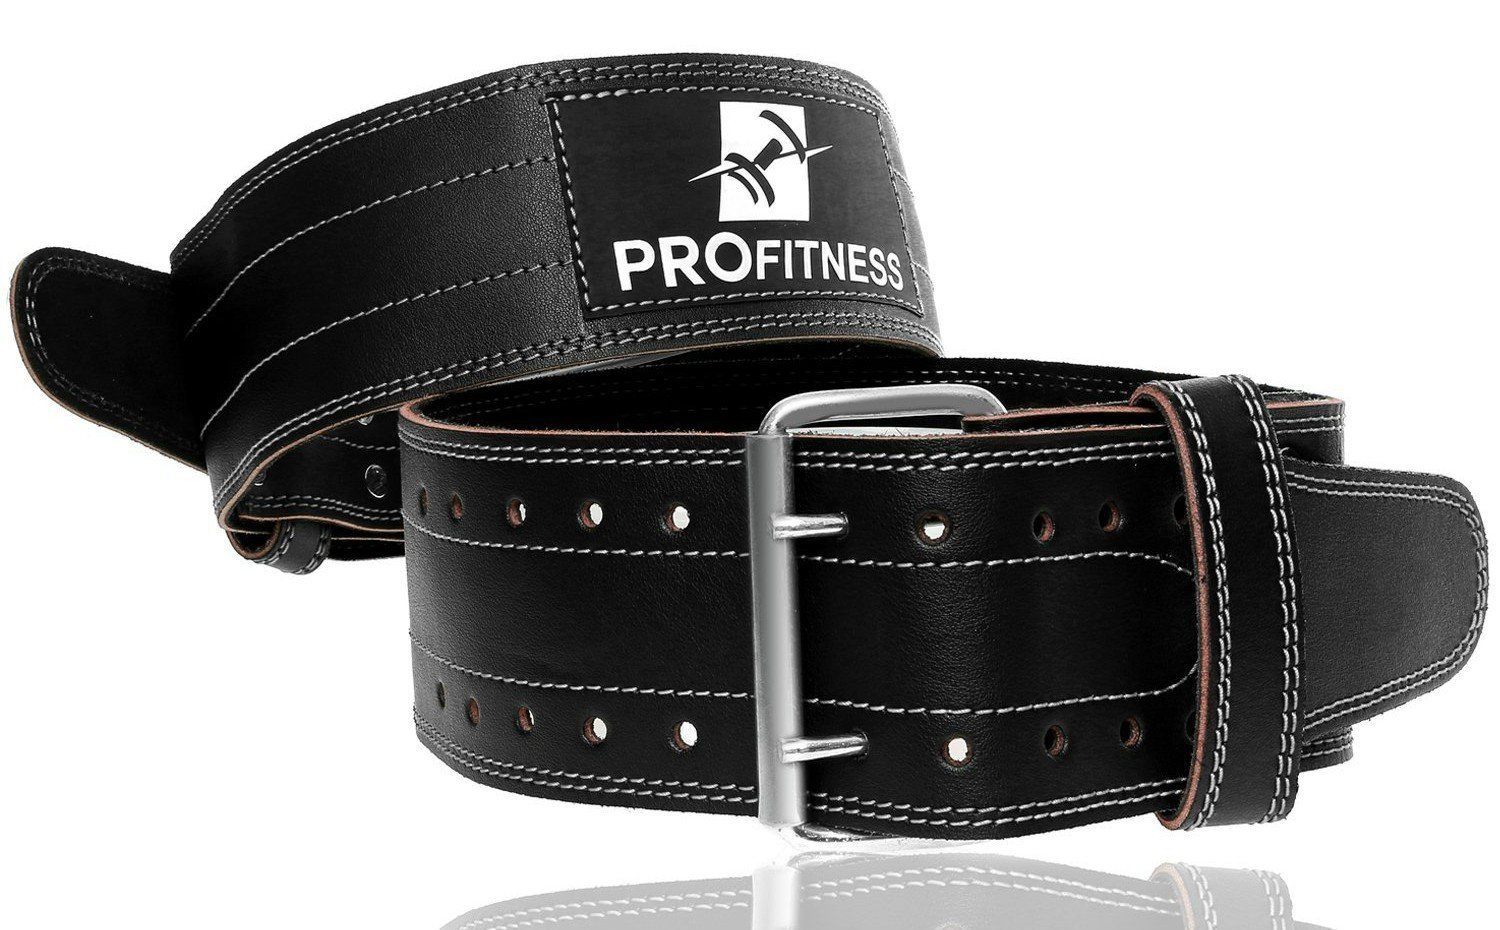 ProFitness Genuine Leather Workout Belt (4 Inches Wide) - Proper Weight Lifting Form - Lower Back Support for Squats, Deadlifts, (Black/White, X-Large 42''-49'' (Waist Size not Pant Size))